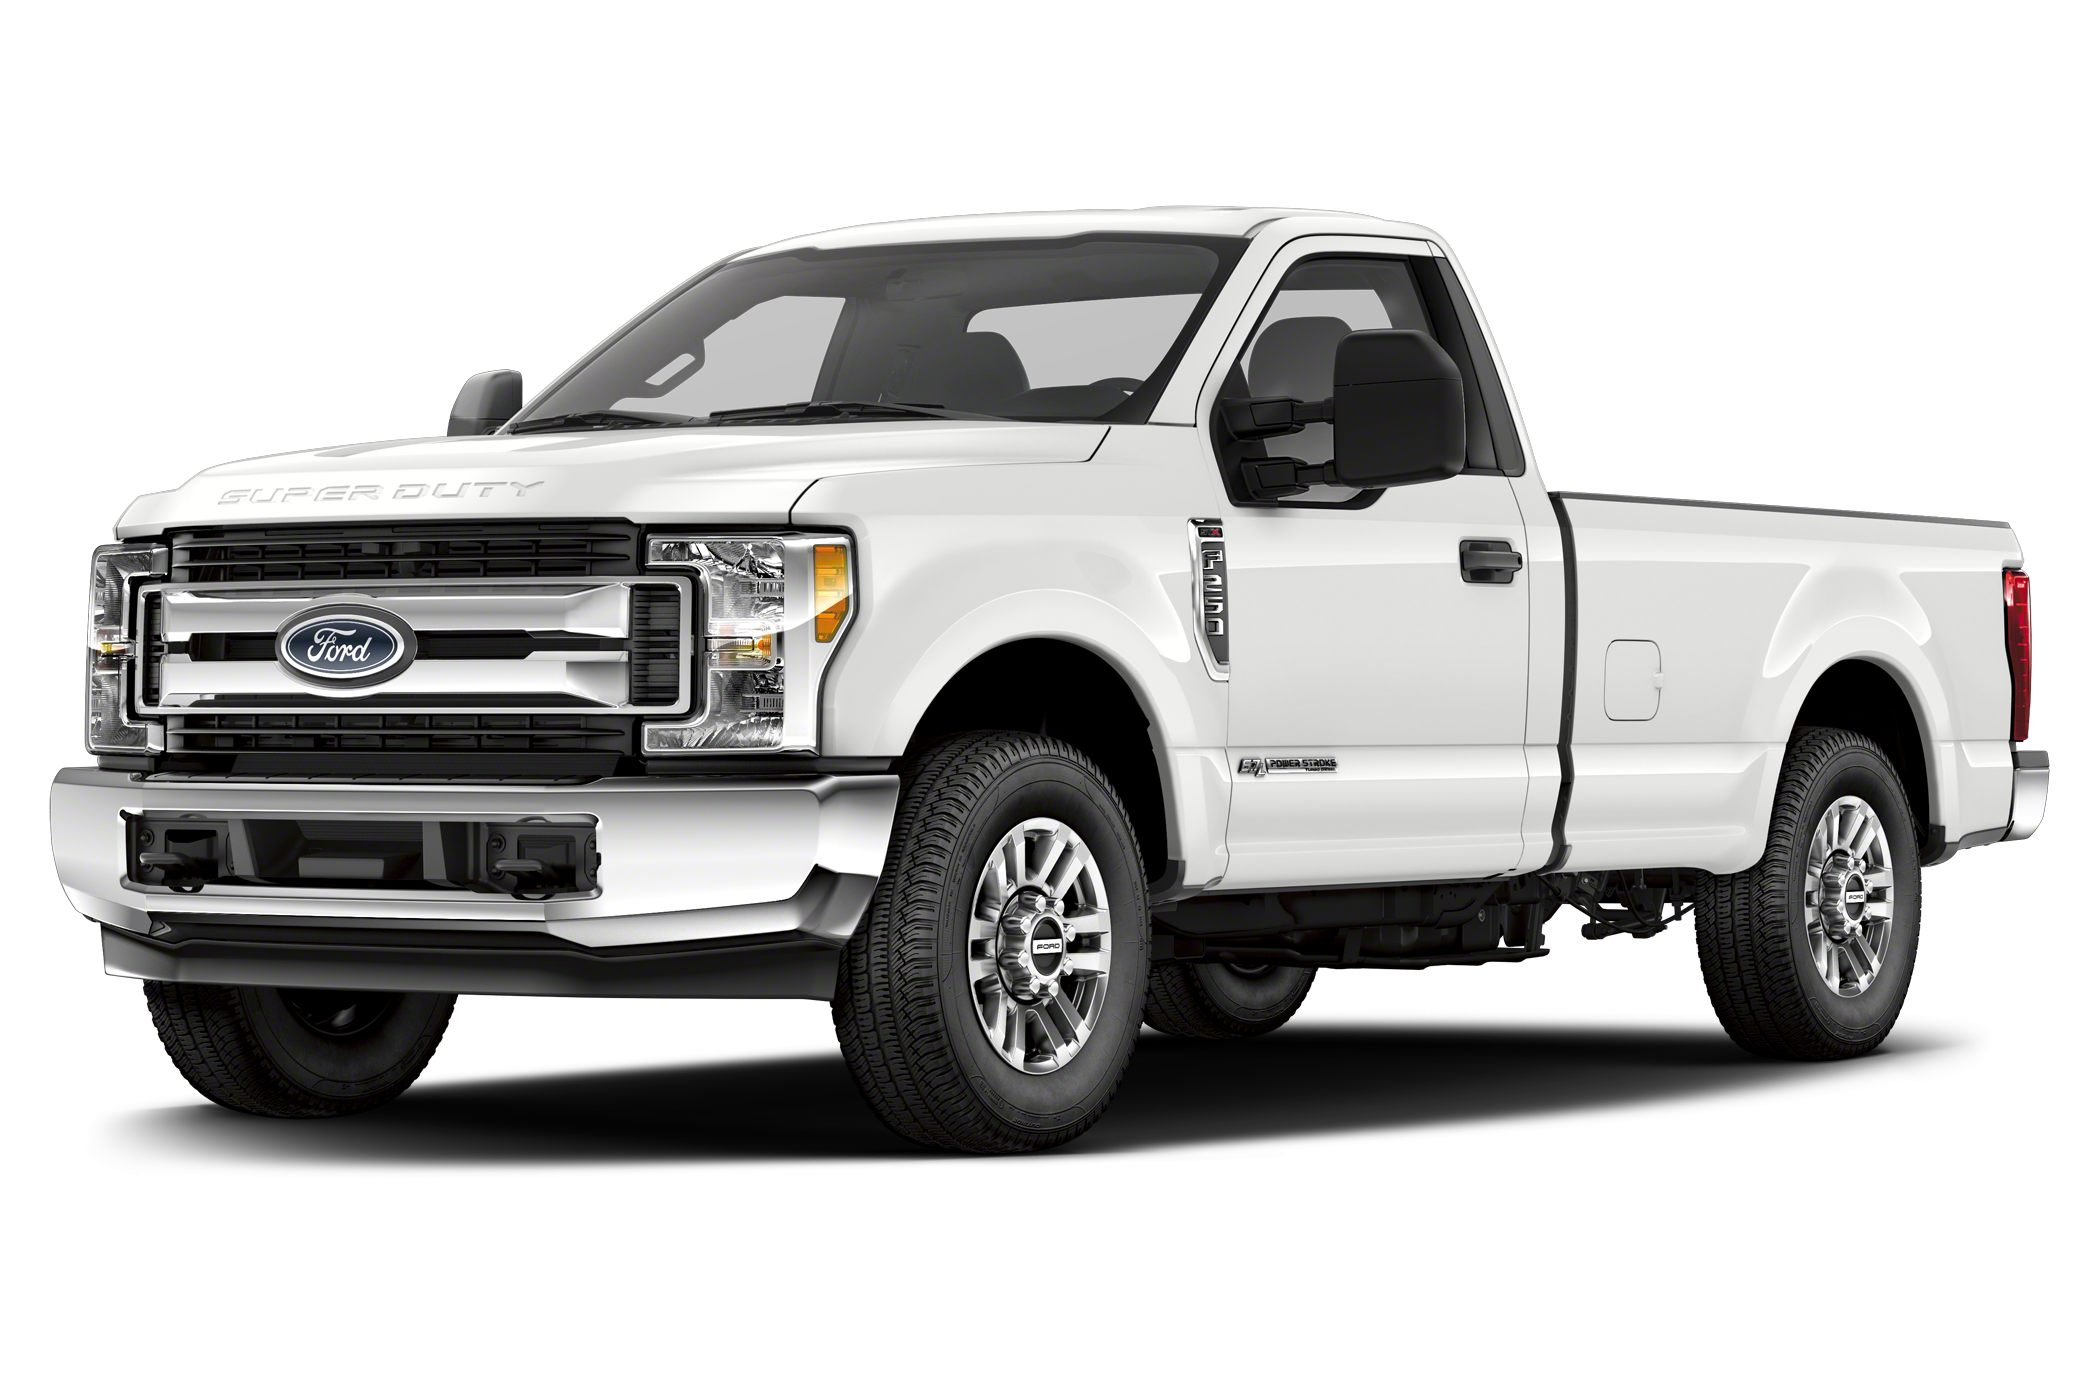 gm recalls 330 000 fullsize trucks for airbag replacement autoblog. Black Bedroom Furniture Sets. Home Design Ideas